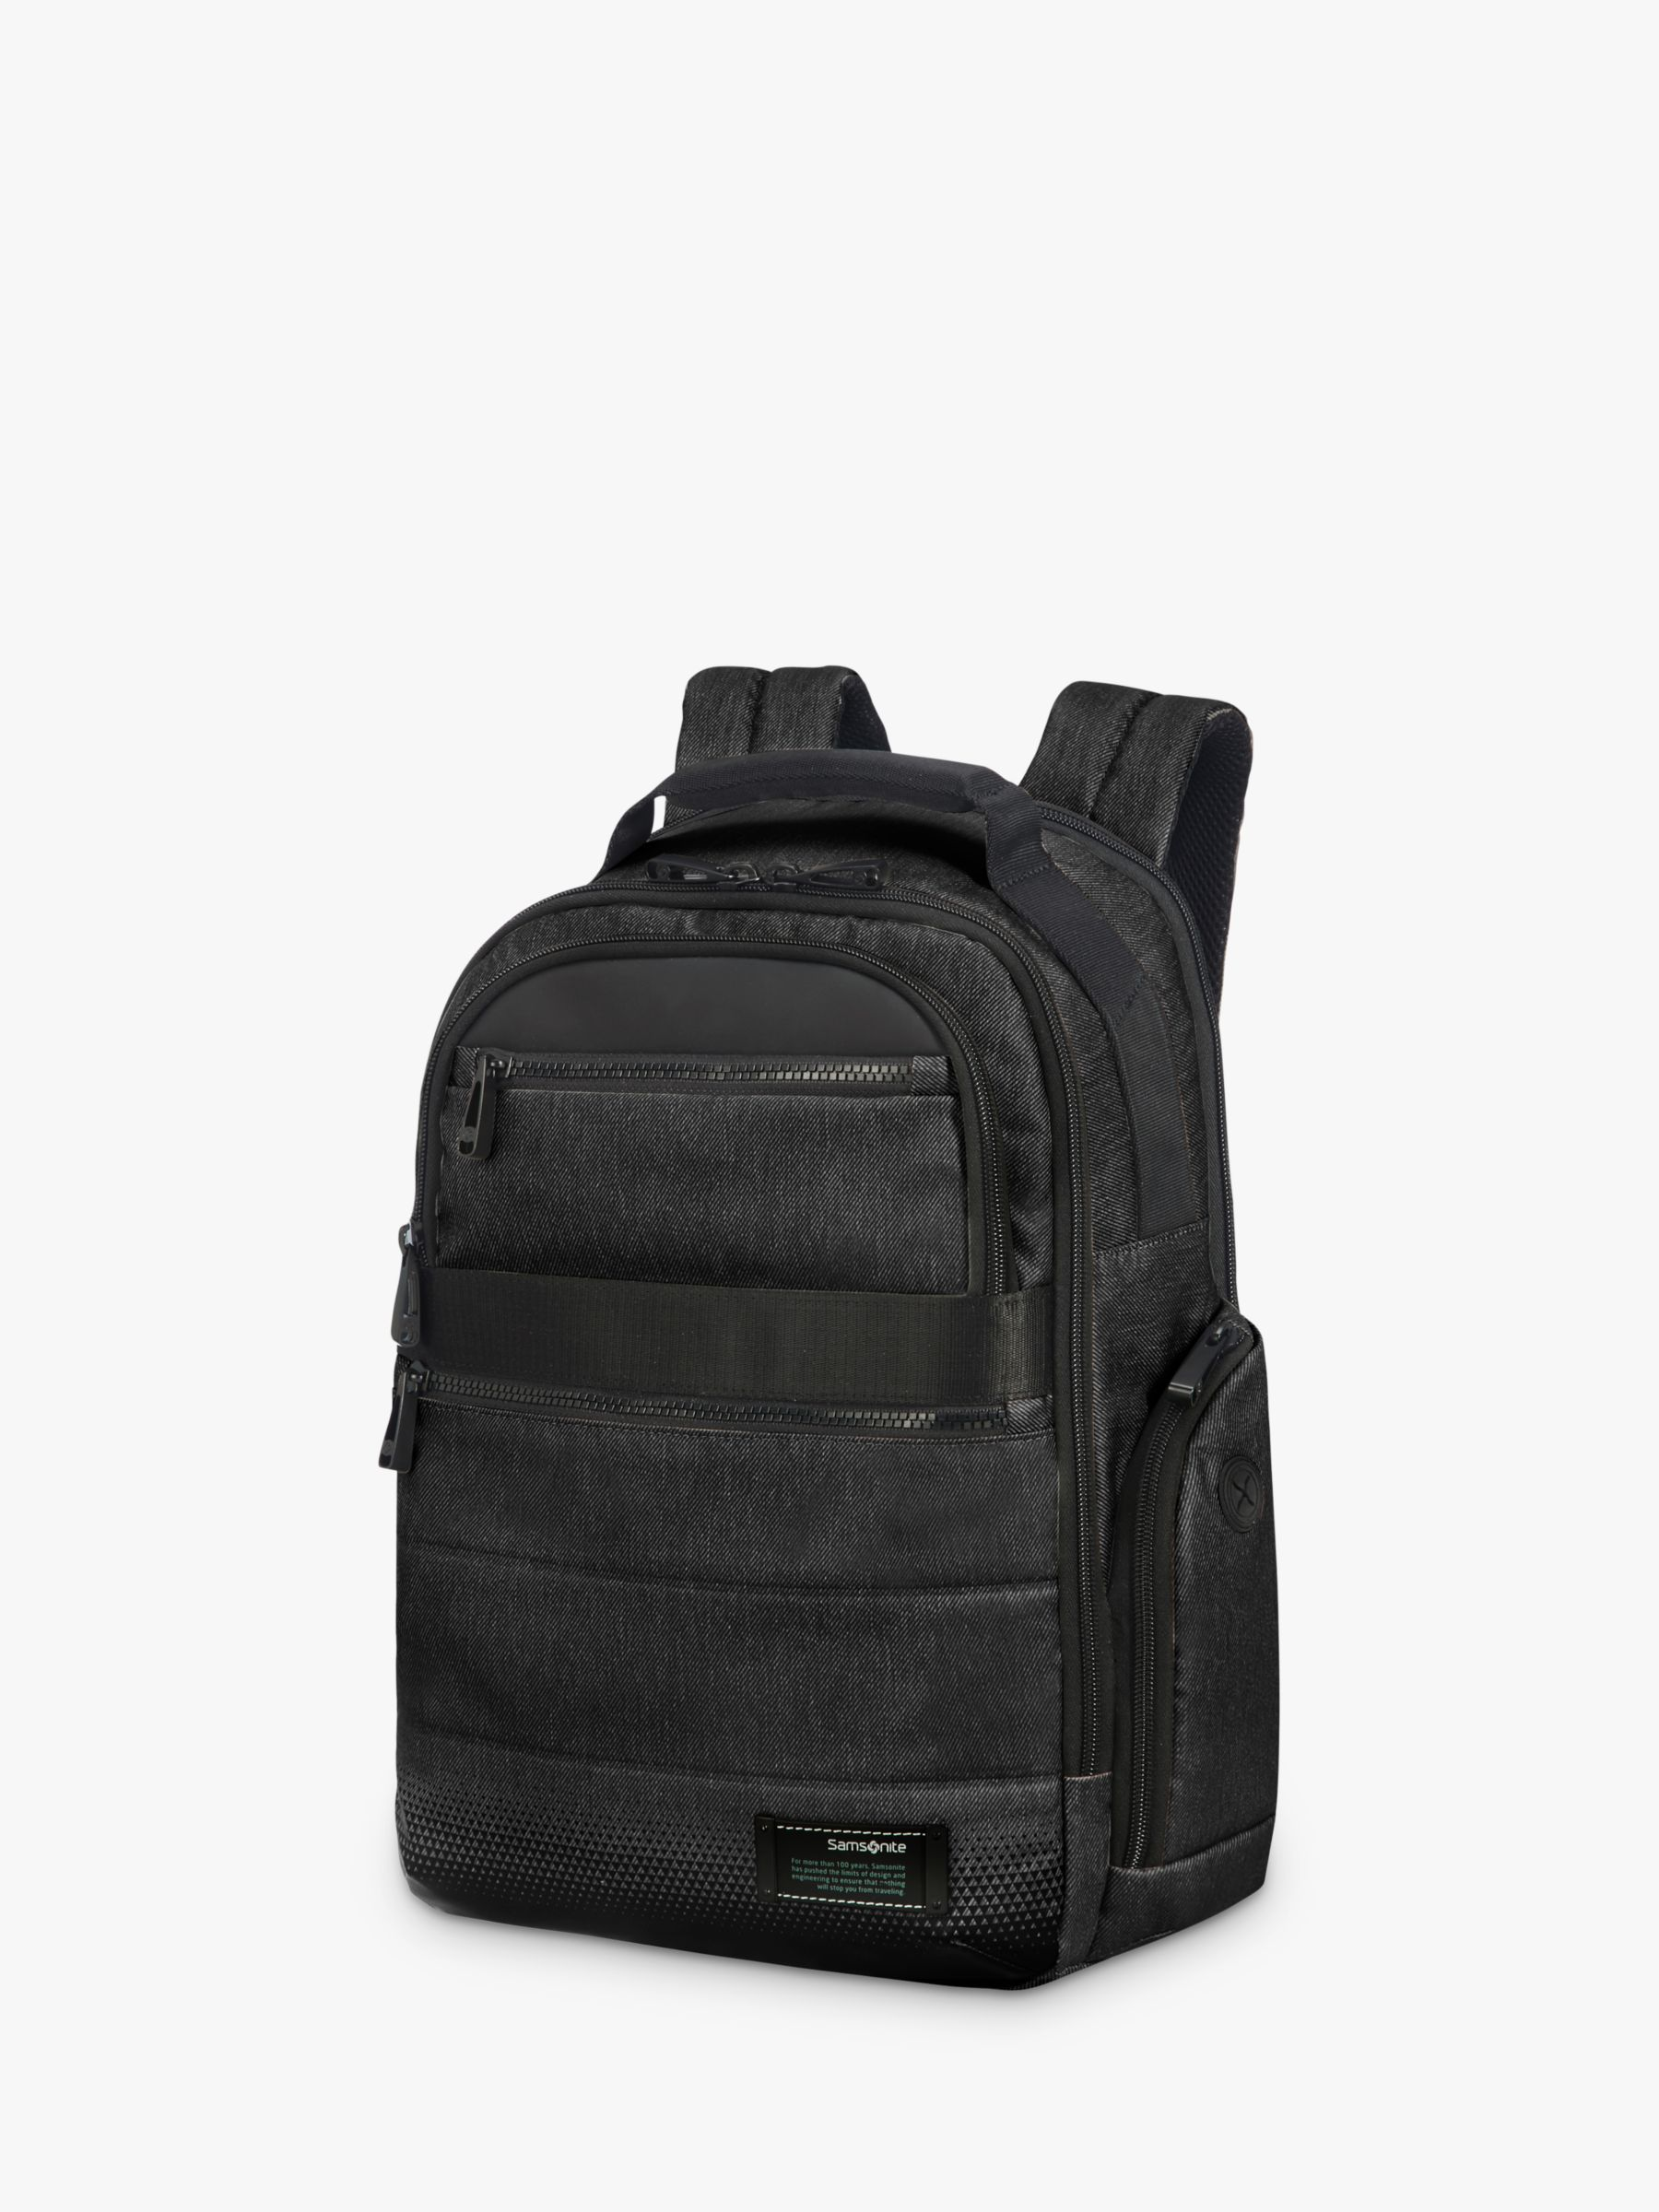 Samsonite Samsonite Cityvibe 2.0 14 Laptop Backpack, Jet Black